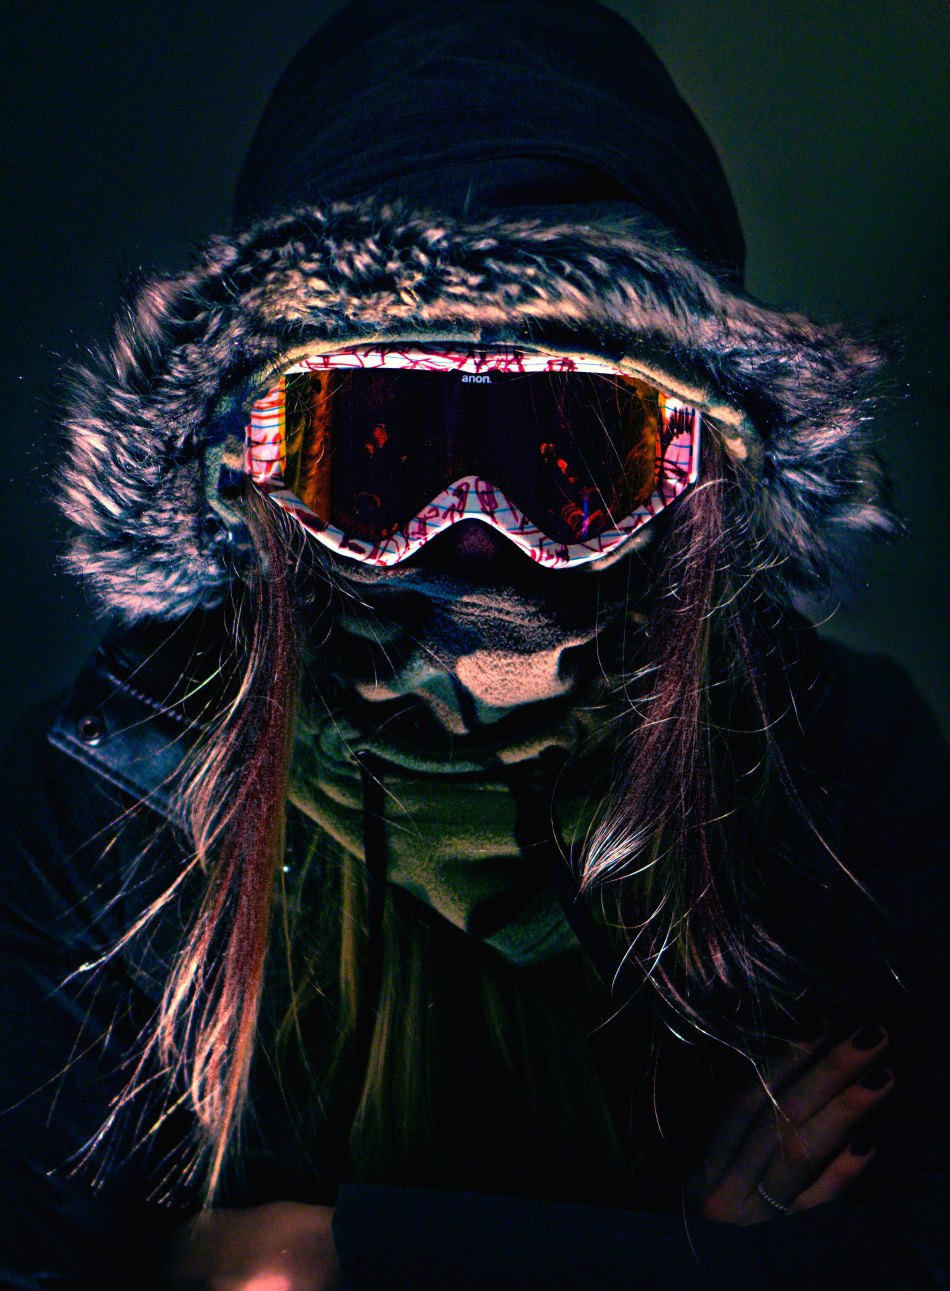 Woman standing in the dark with covered face, wearing scarf, hooded jacket and ski goggles